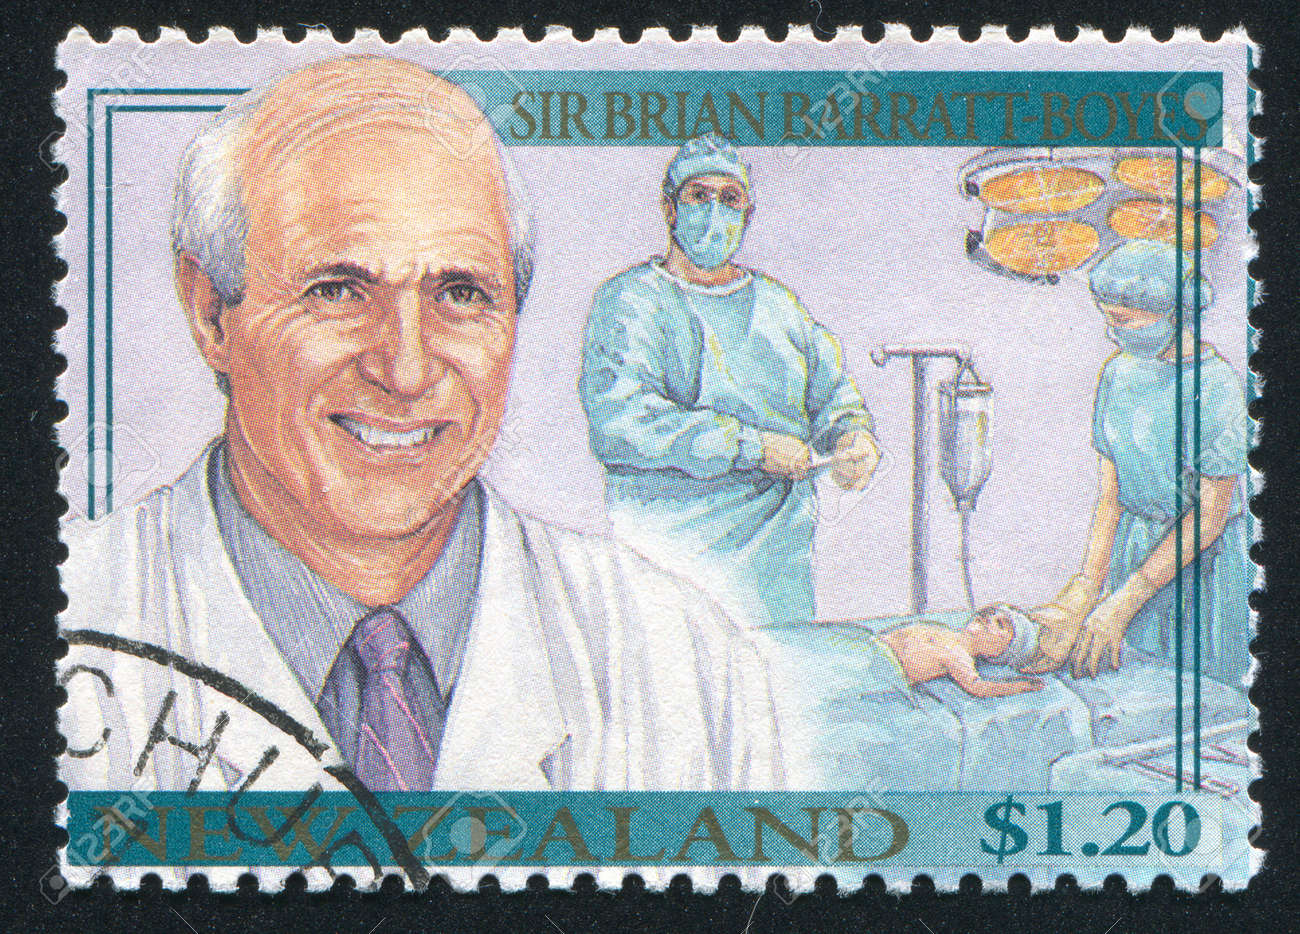 NEW ZEALAND - CIRCA 1995: stamp printed by New Zealand, shows Famous Living New Zealanders, Sir Brian Barratt-Boyes, science, medicine, education, circa 1995 Stock Photo - 13353688